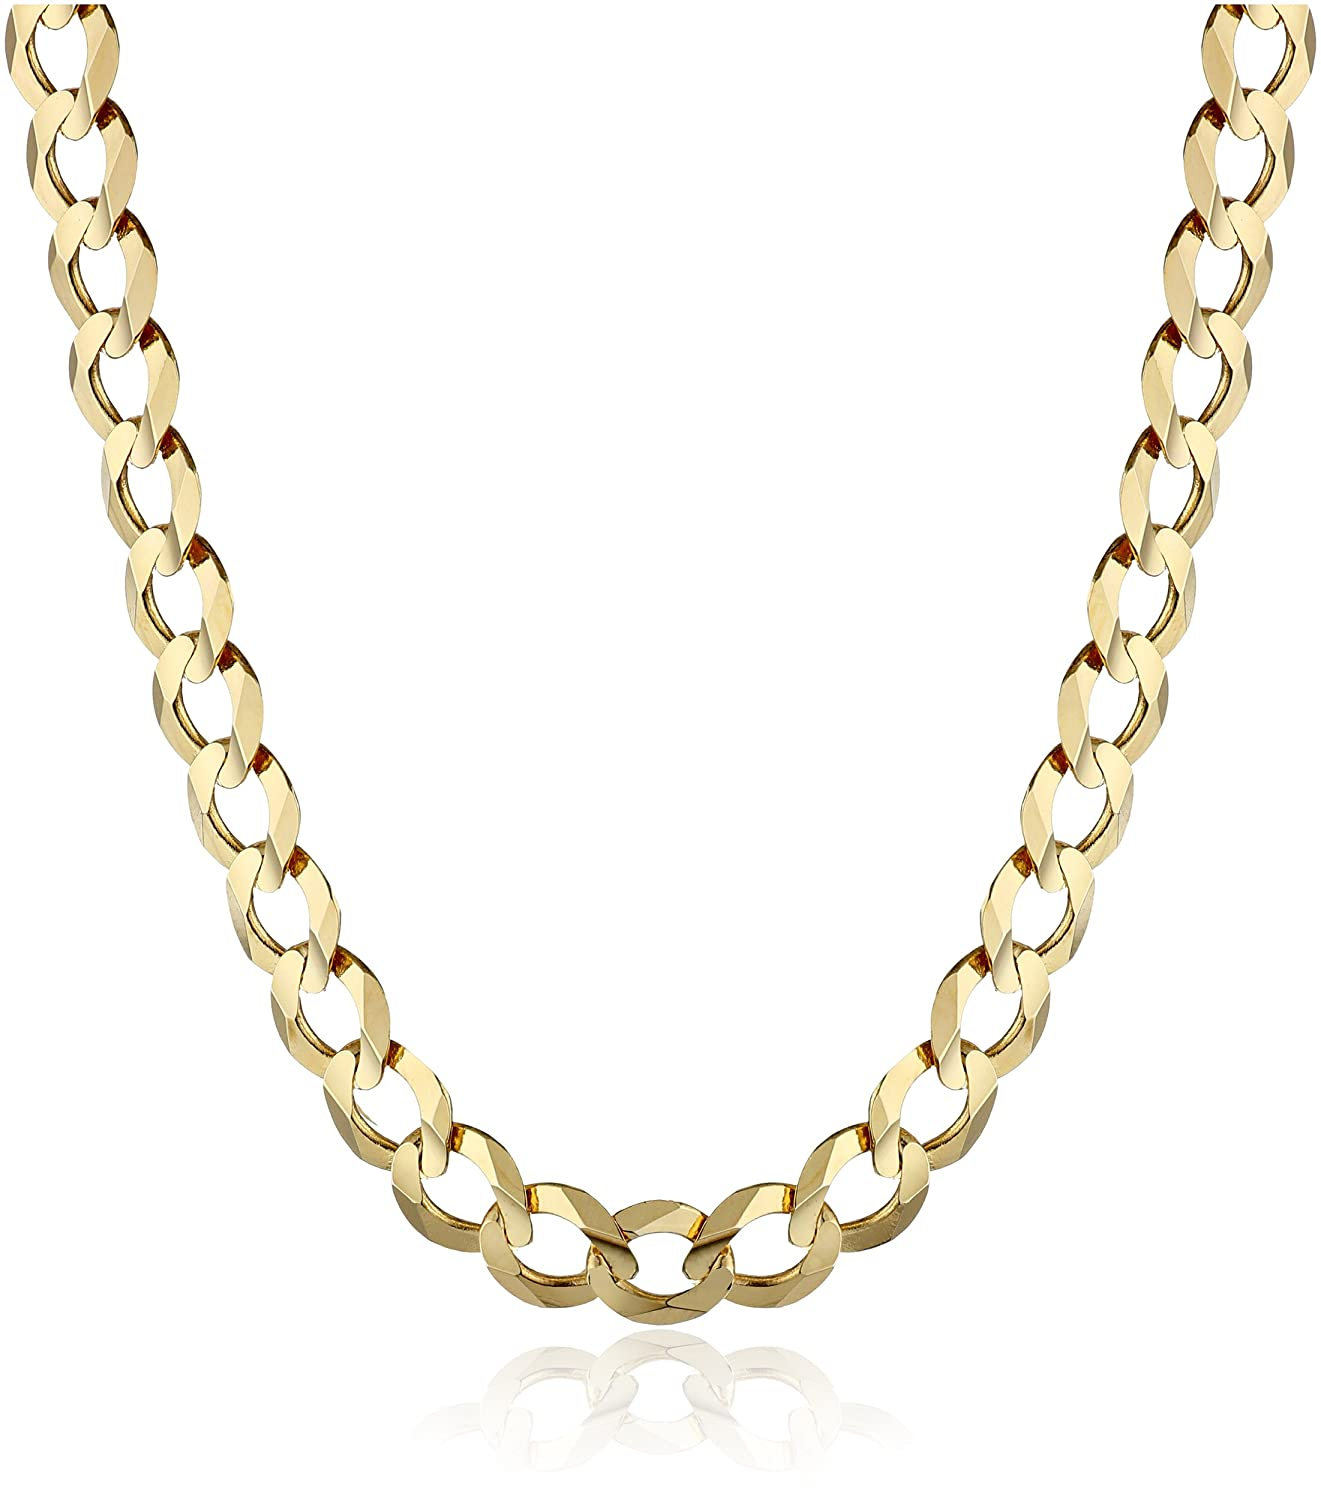 jewelry davieslee filled gold curb necklace wear cut party daily womens mens cuban chain products